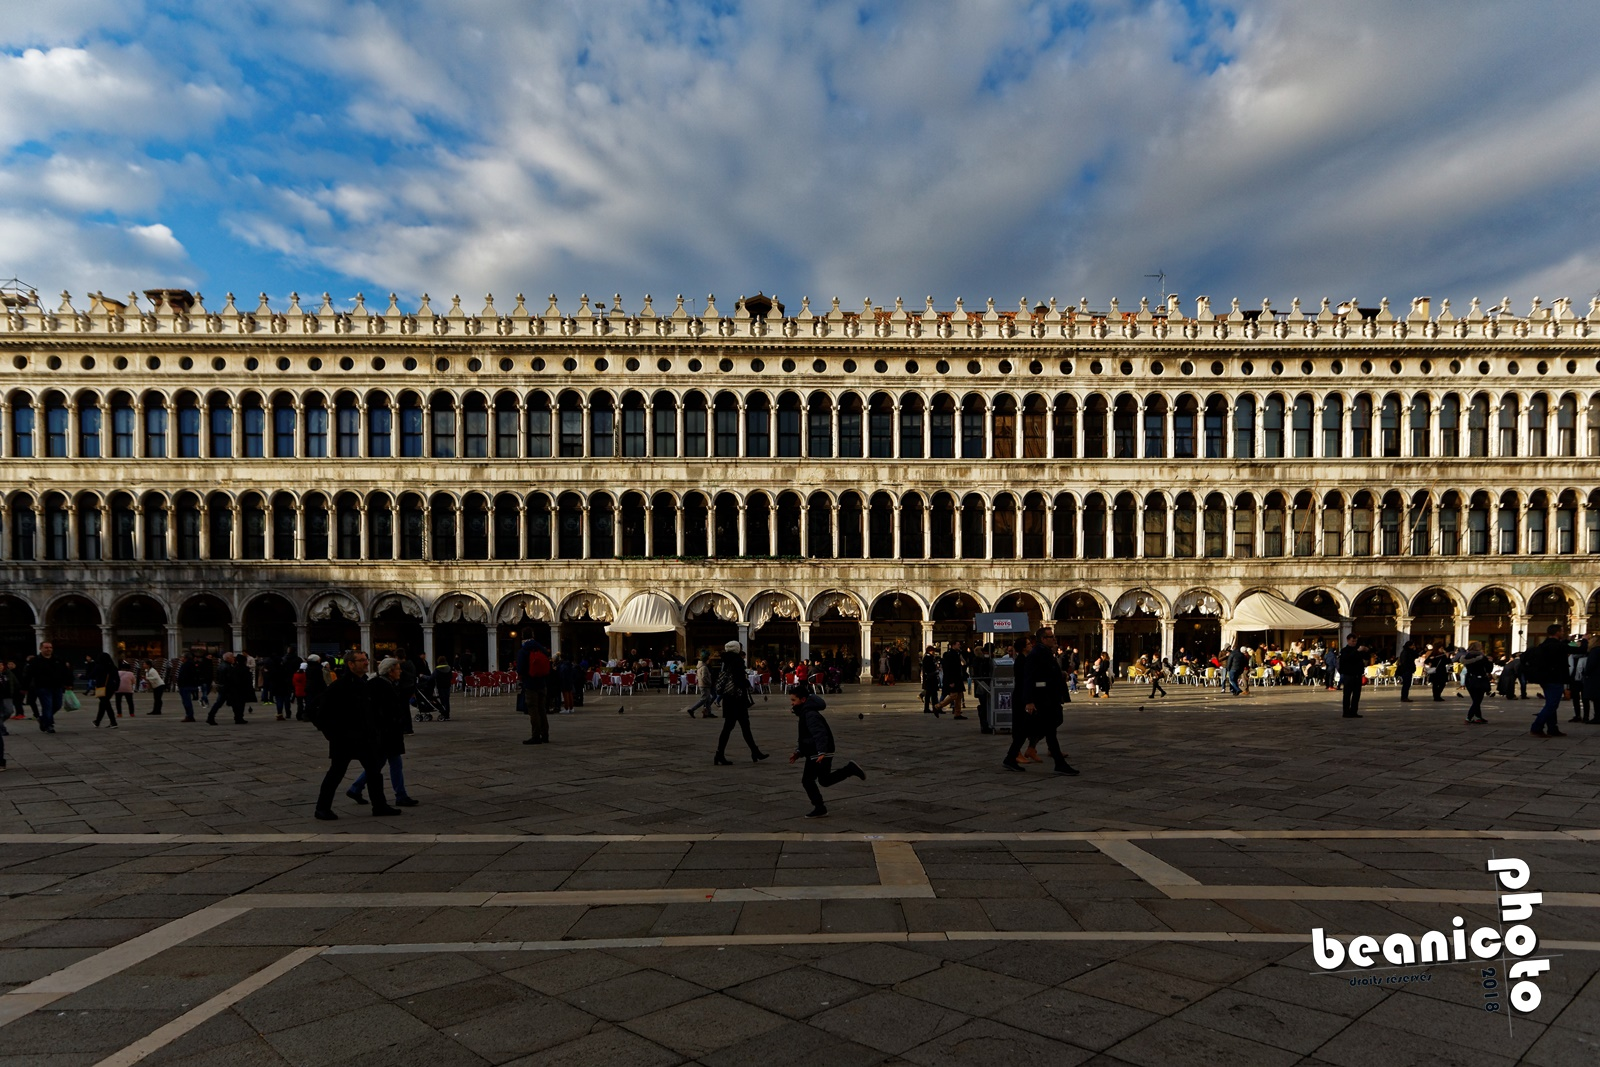 www.beanico-photo.fr - Canon 5DIII - Sigma Ex 20mm - f/4.0 1/1000 ISO400 - Venise - Place Saint Marc